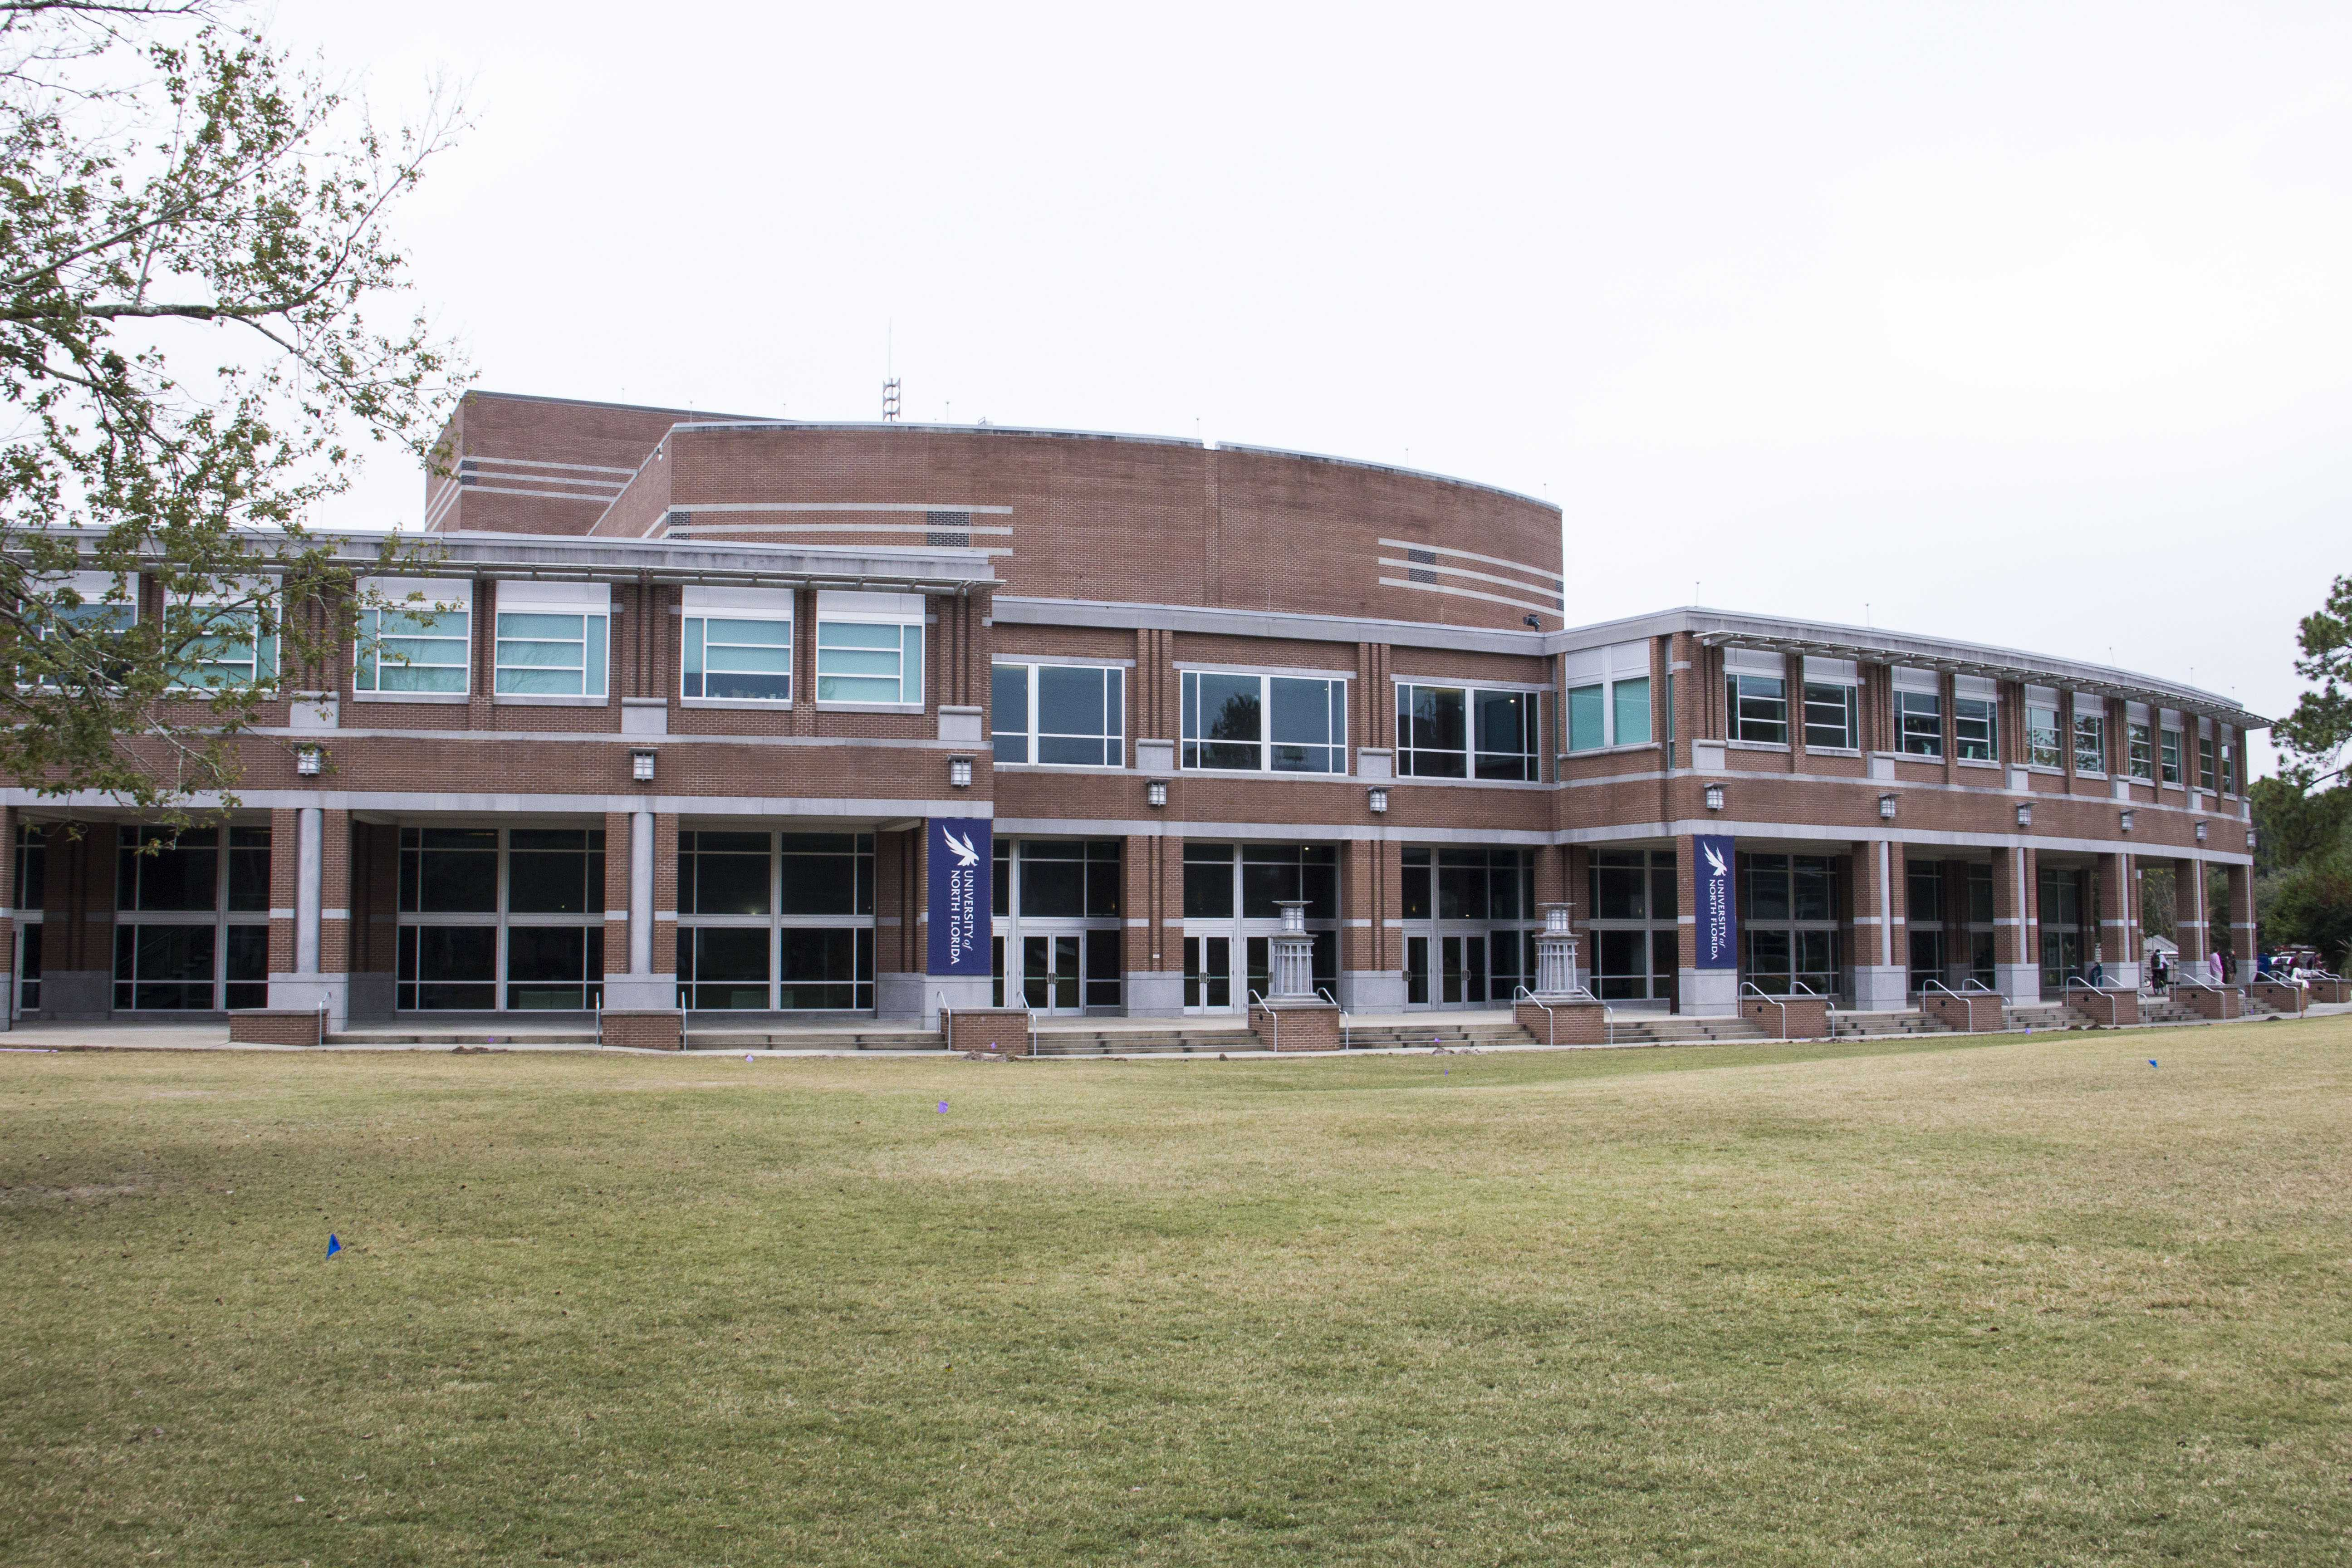 Police Beat: Man receives CPR in front of the Fine Arts Center and later dies in hospital